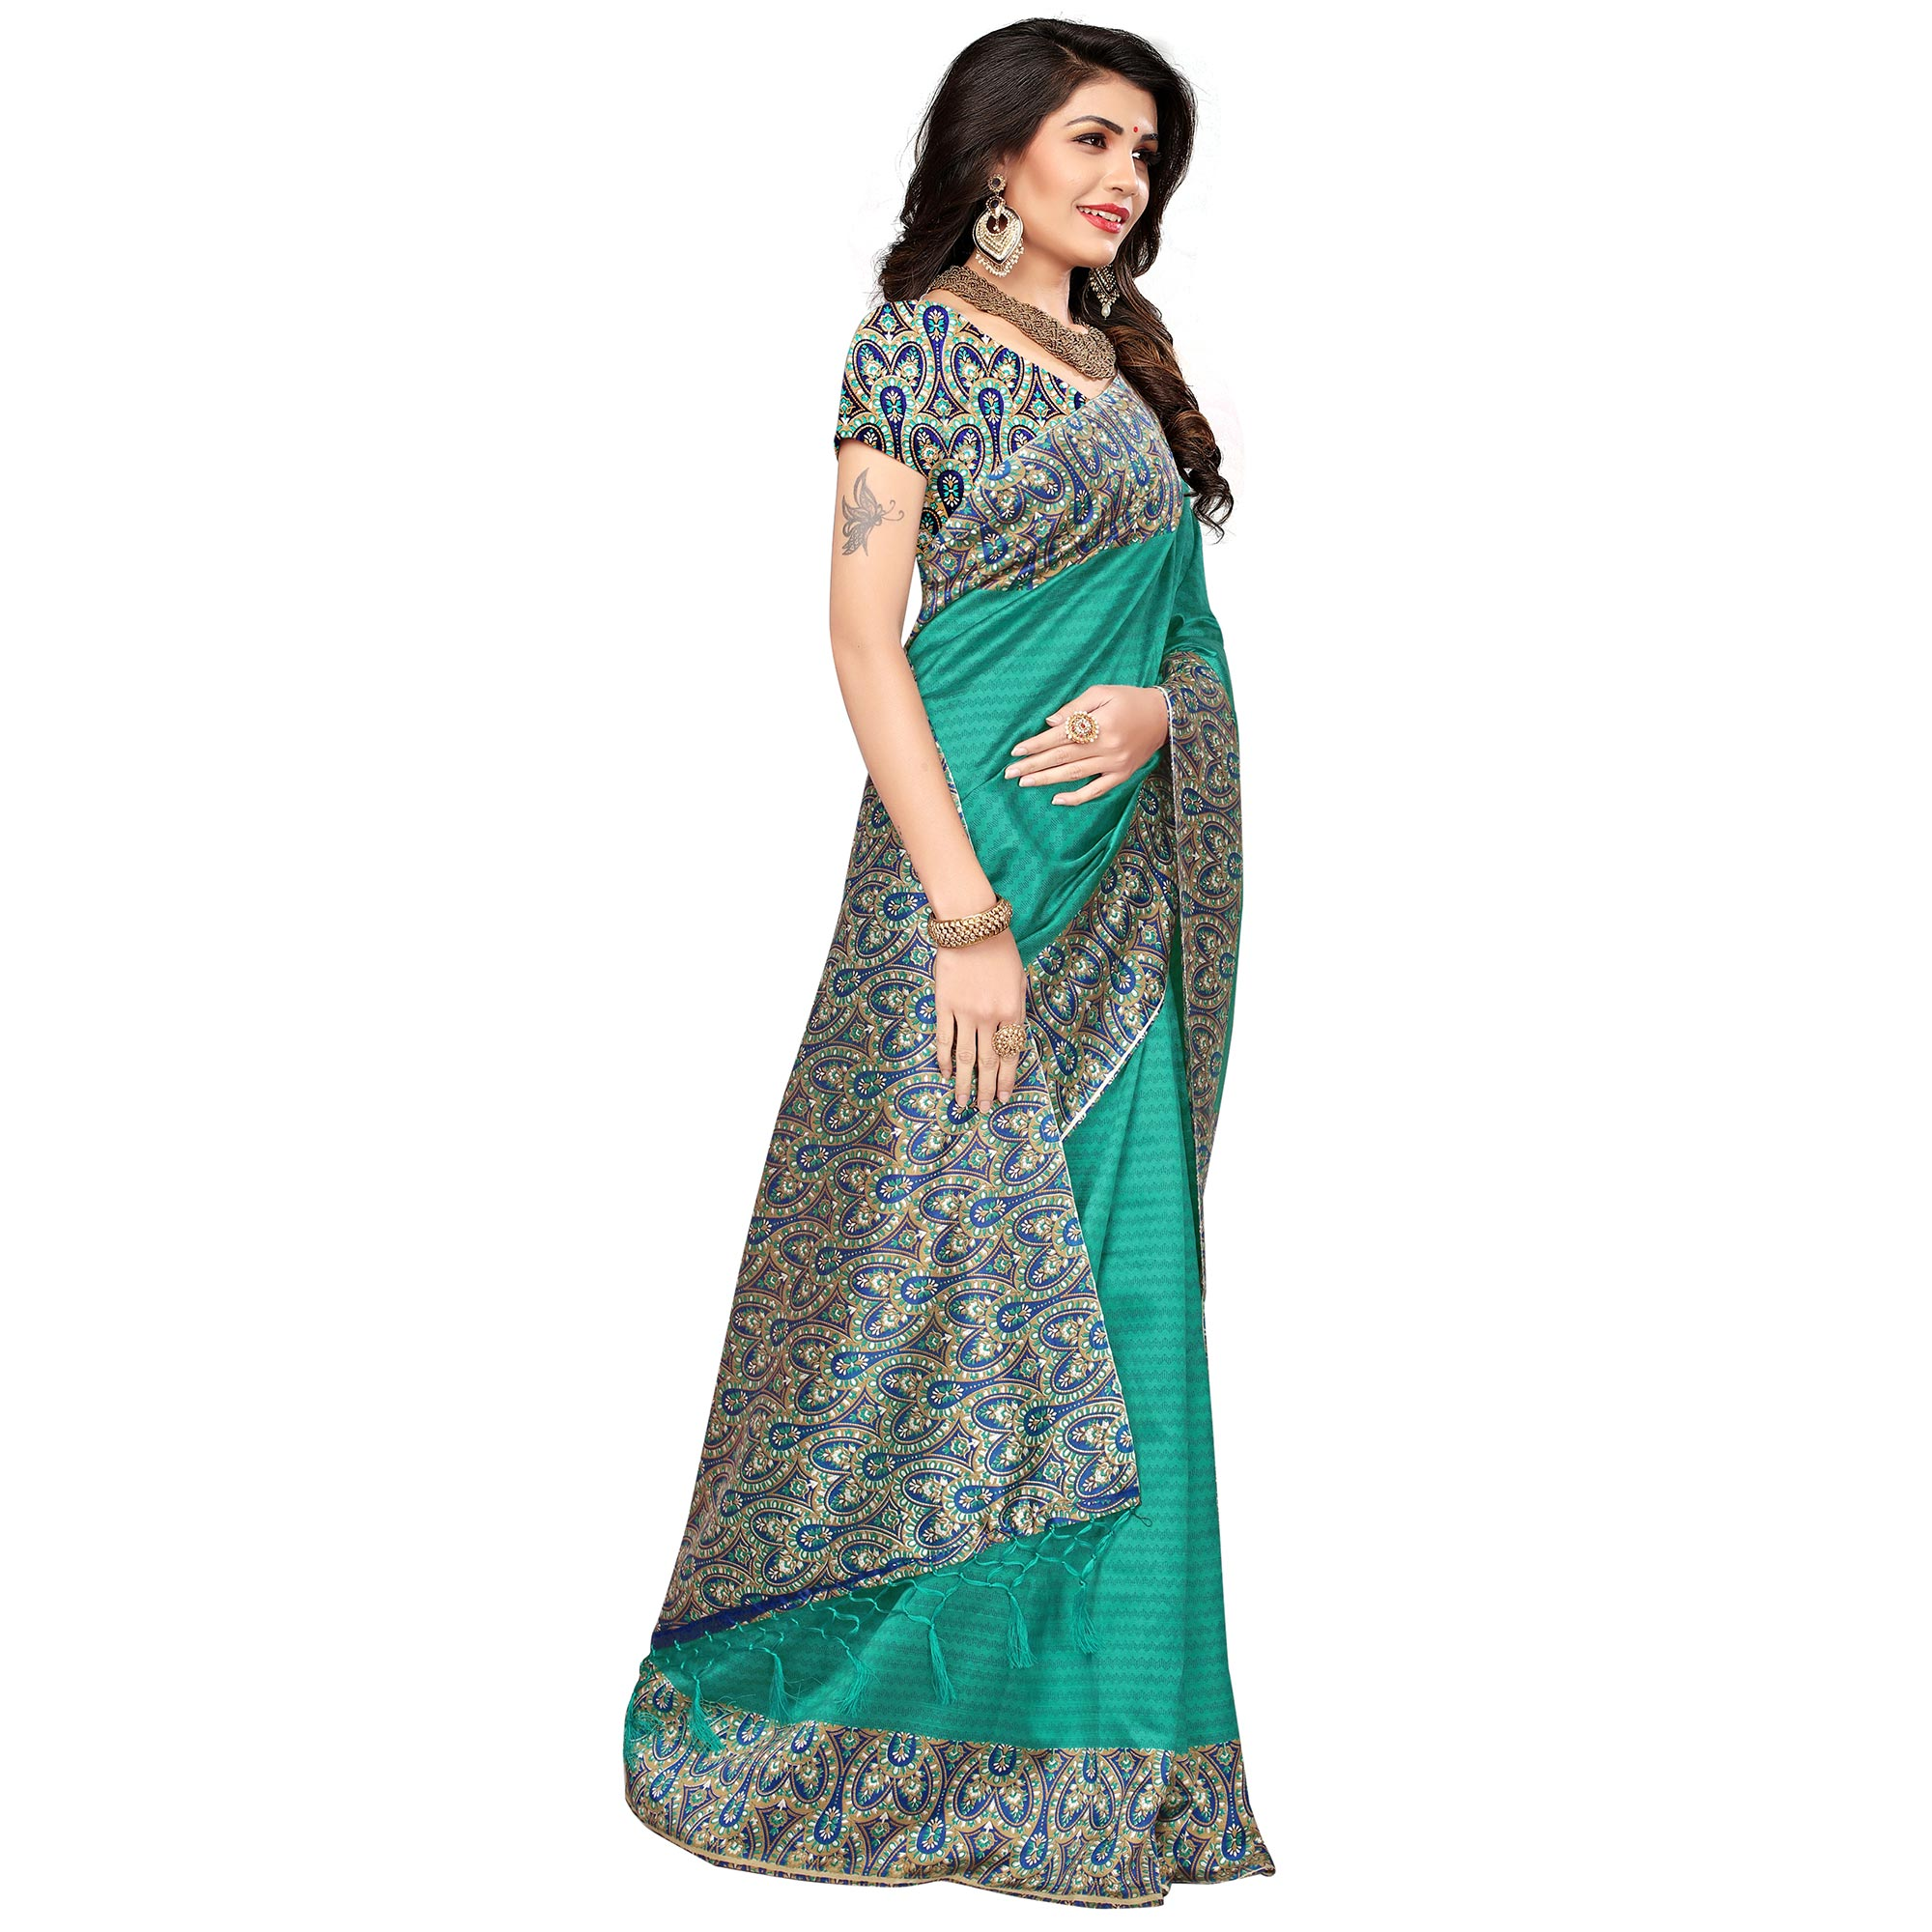 Ravishing Turquoise Green Colored Festive Wear Printed Mysore Art Silk Saree